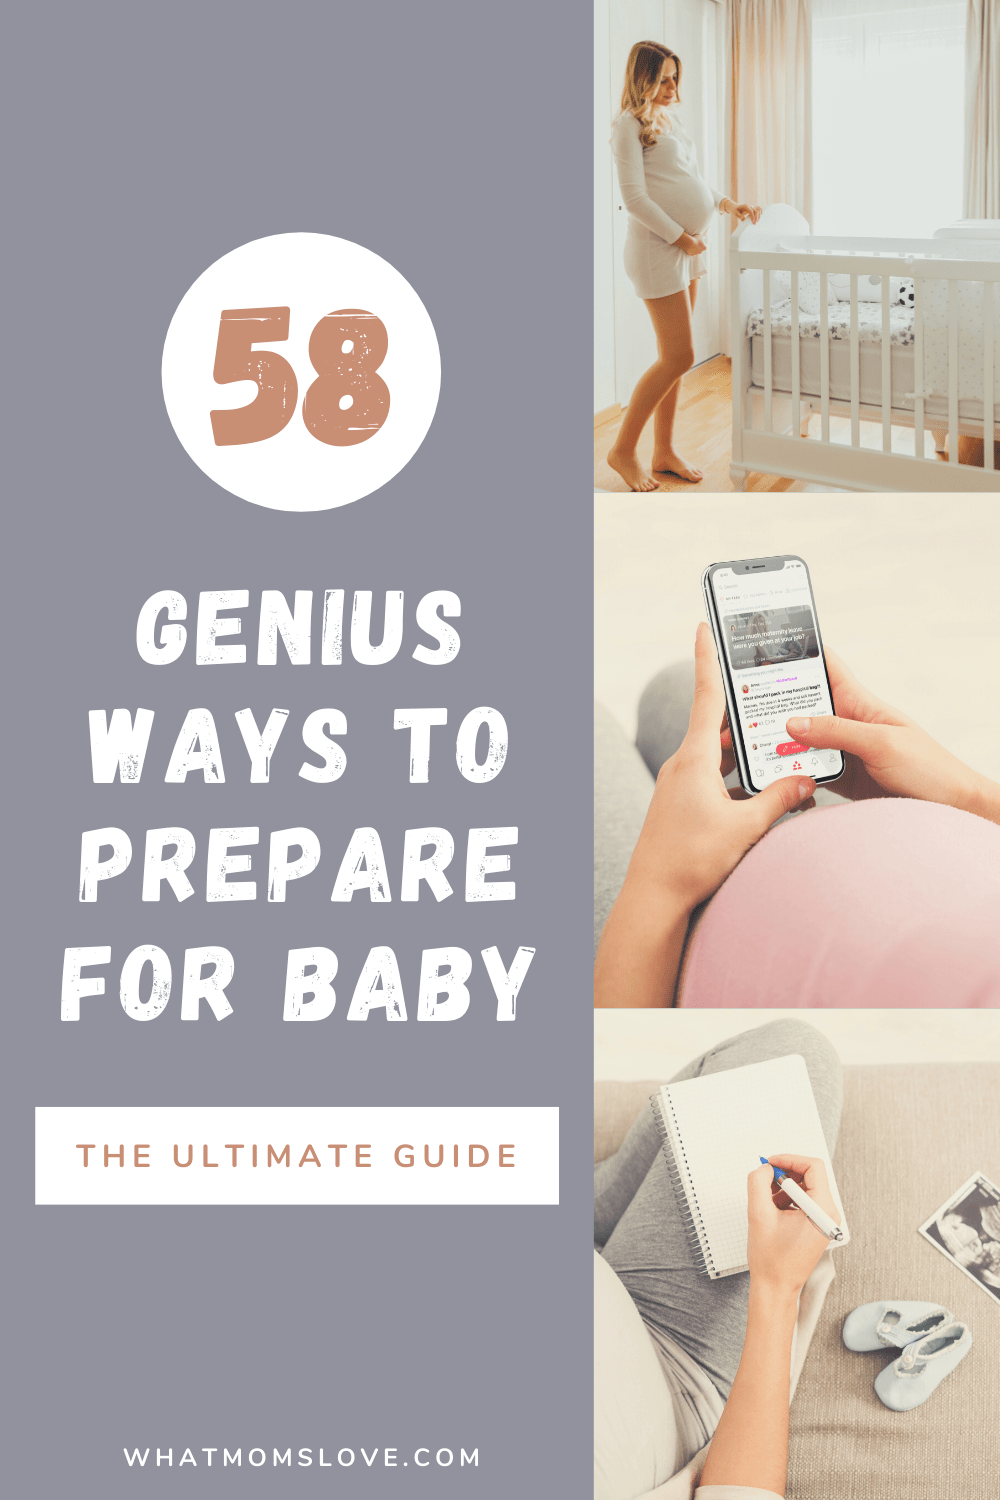 58 genius ways to prepare for baby graphic